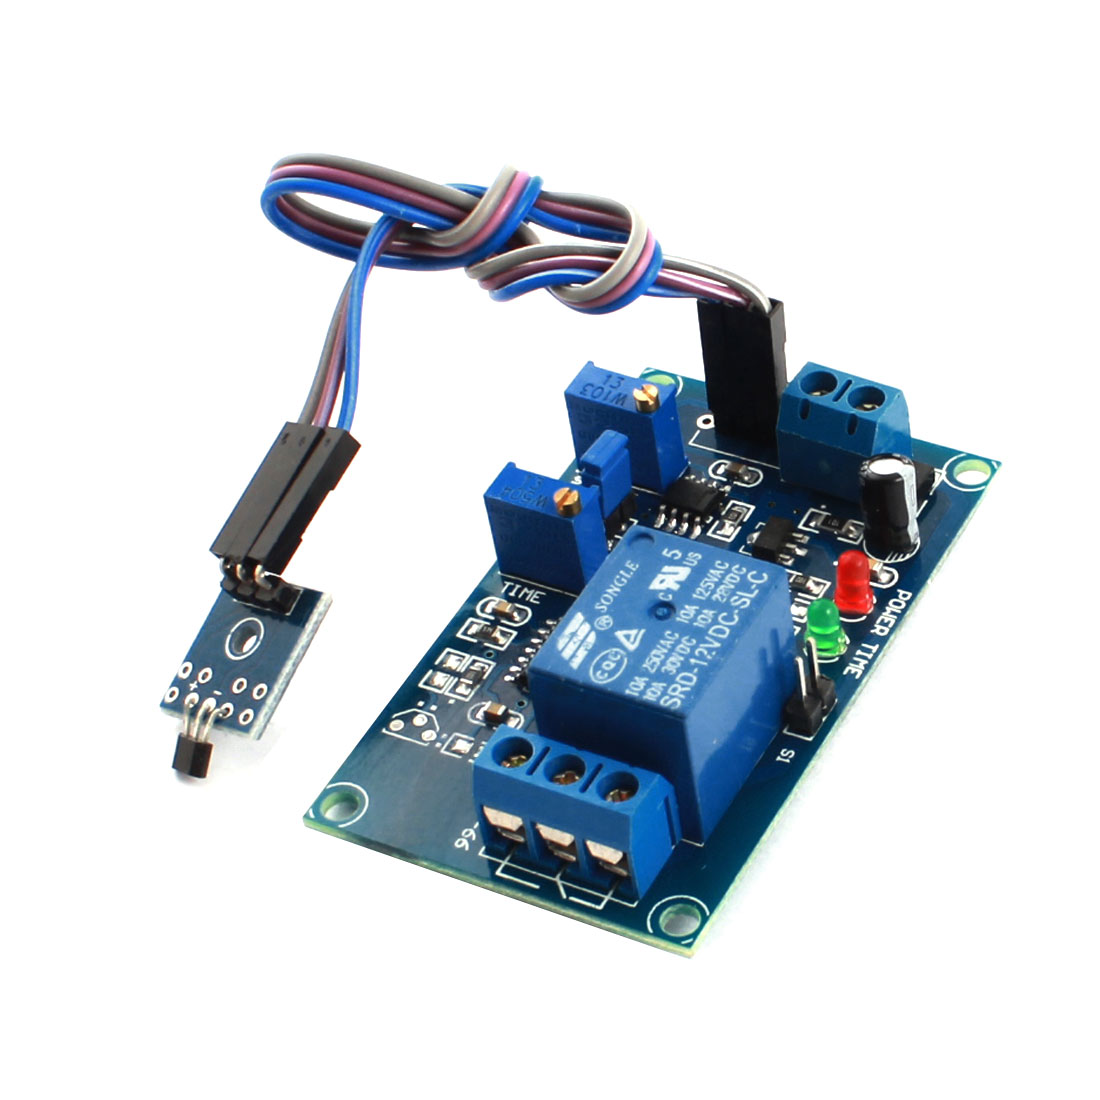 DC12V 1 Channel Hall Effect Sensor Switch Megnetic Inducting Trigger Time Delay Relay Module